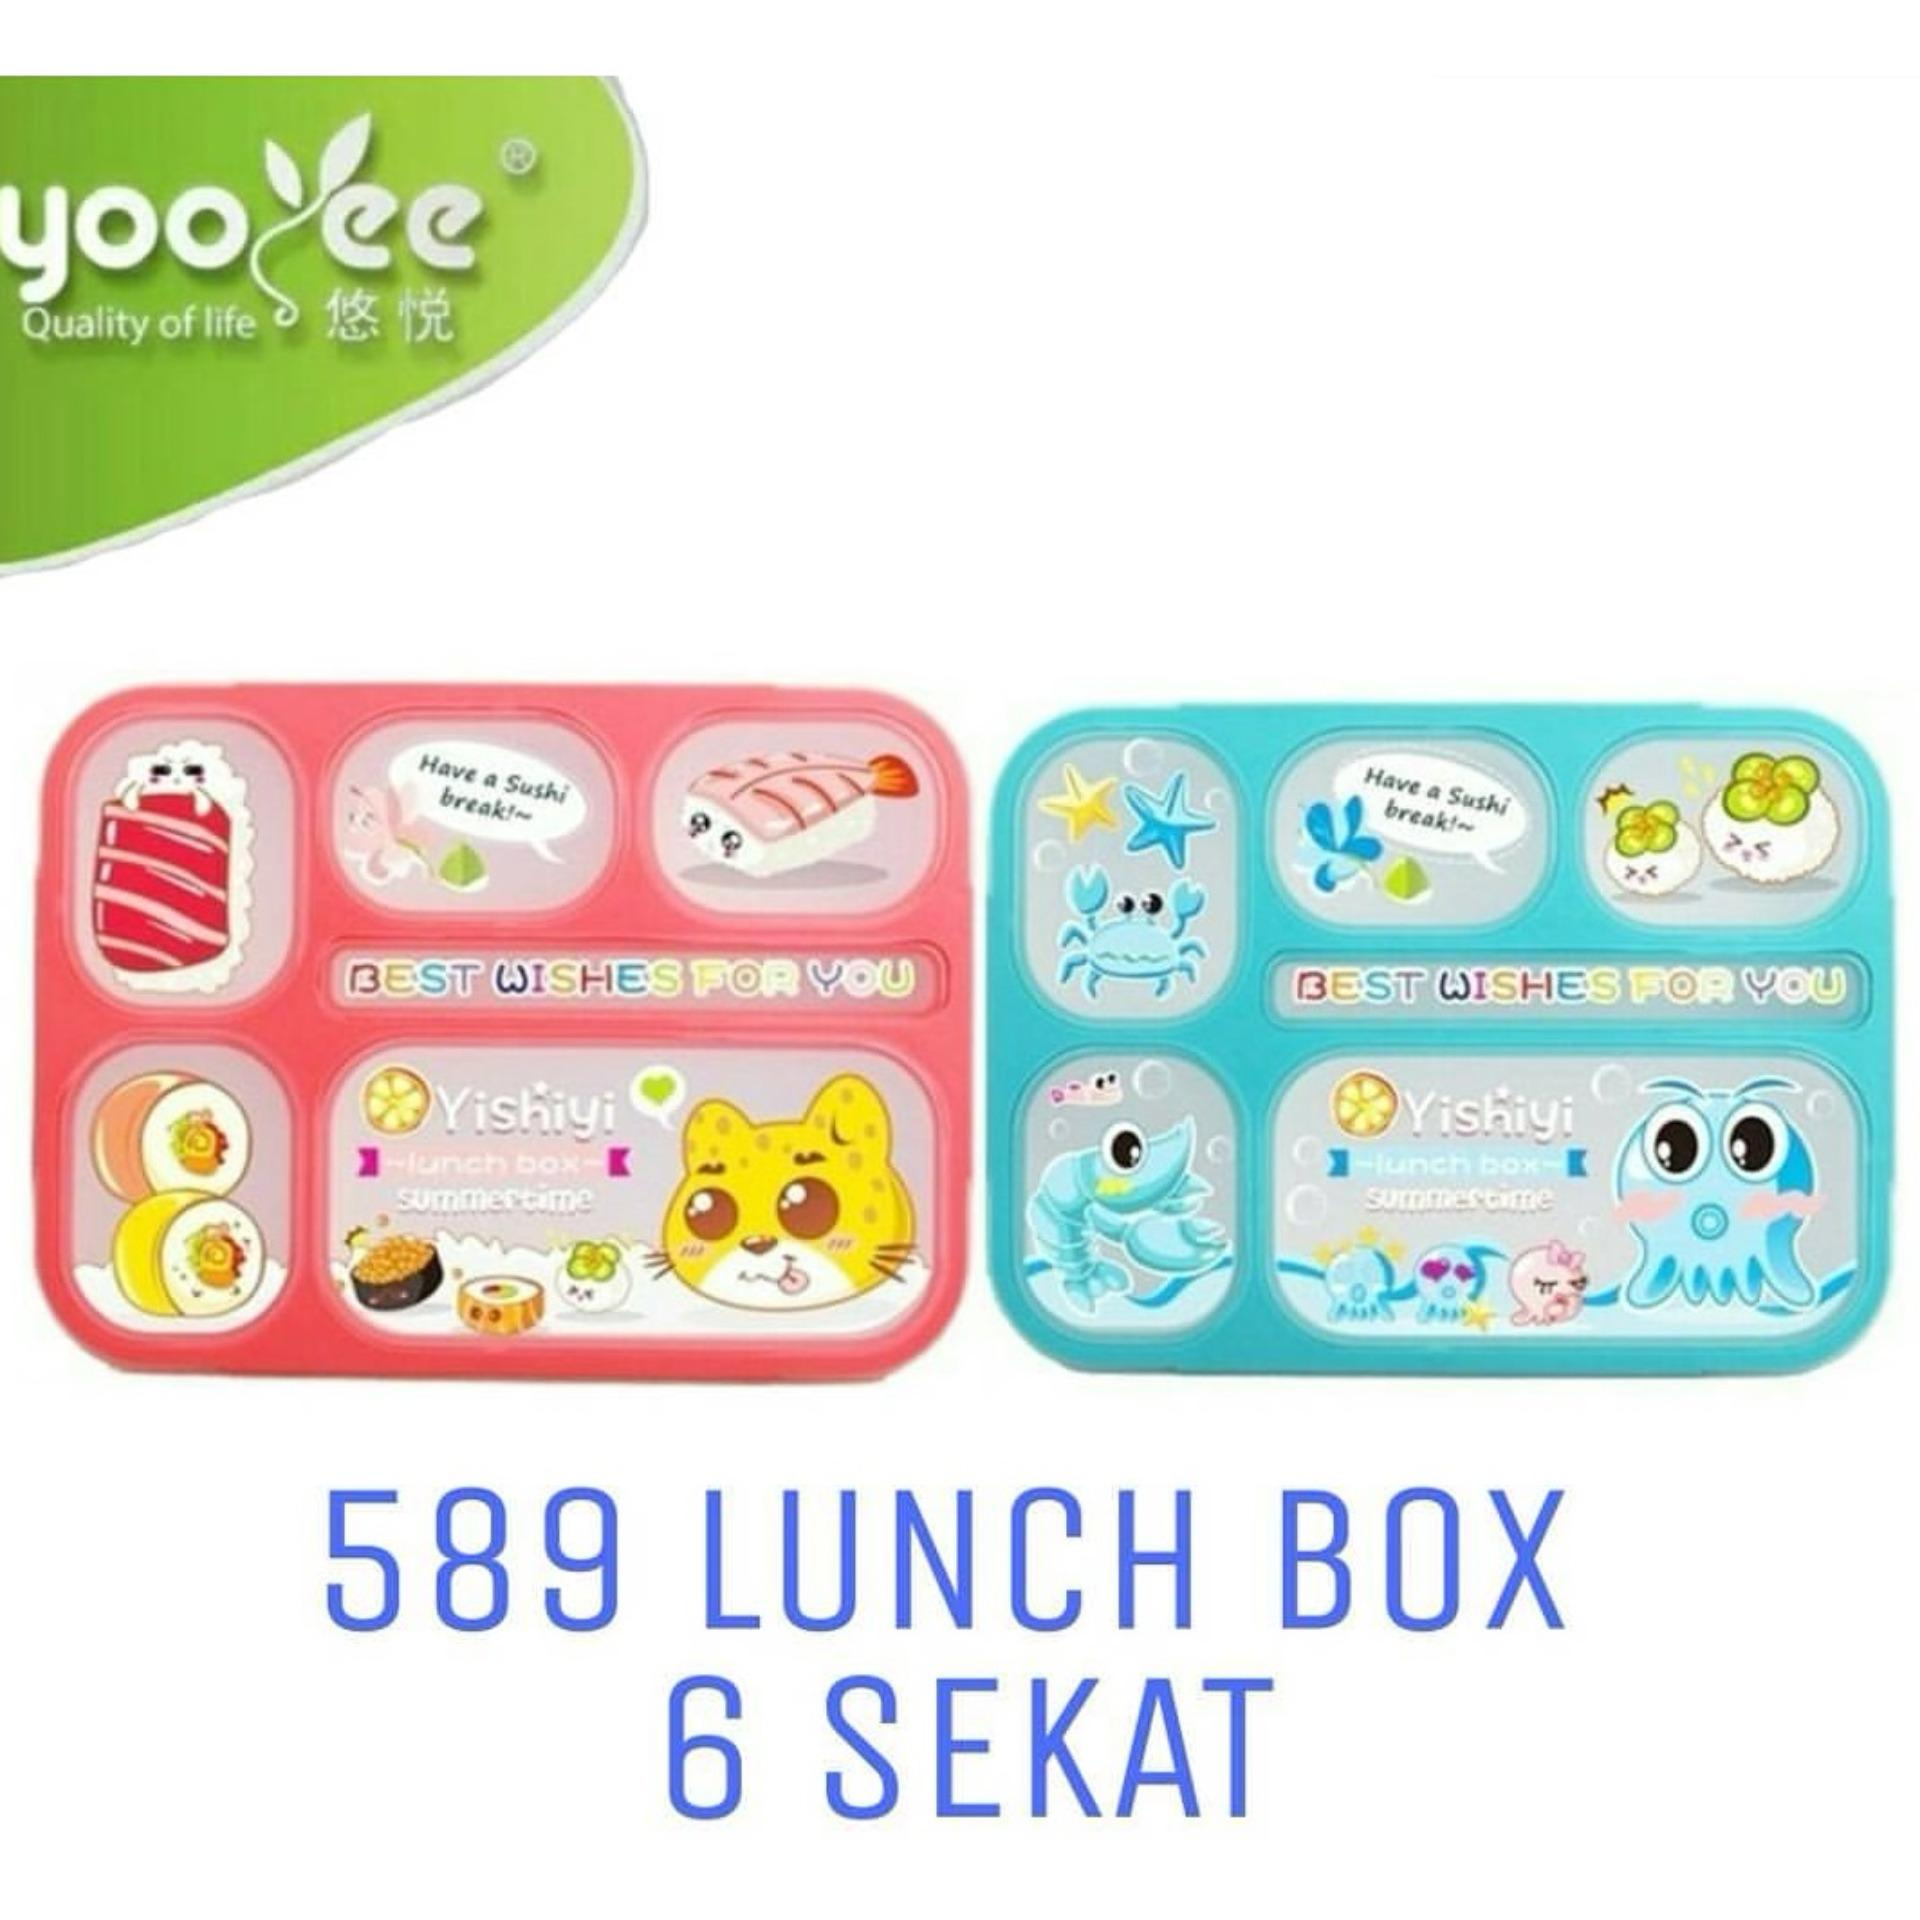 Shock Price YOOYEE LEAK PROOF GRID LUNCH BOX SEKAT 6 / KOTAK MAKAN ANTI TUMPAH 589